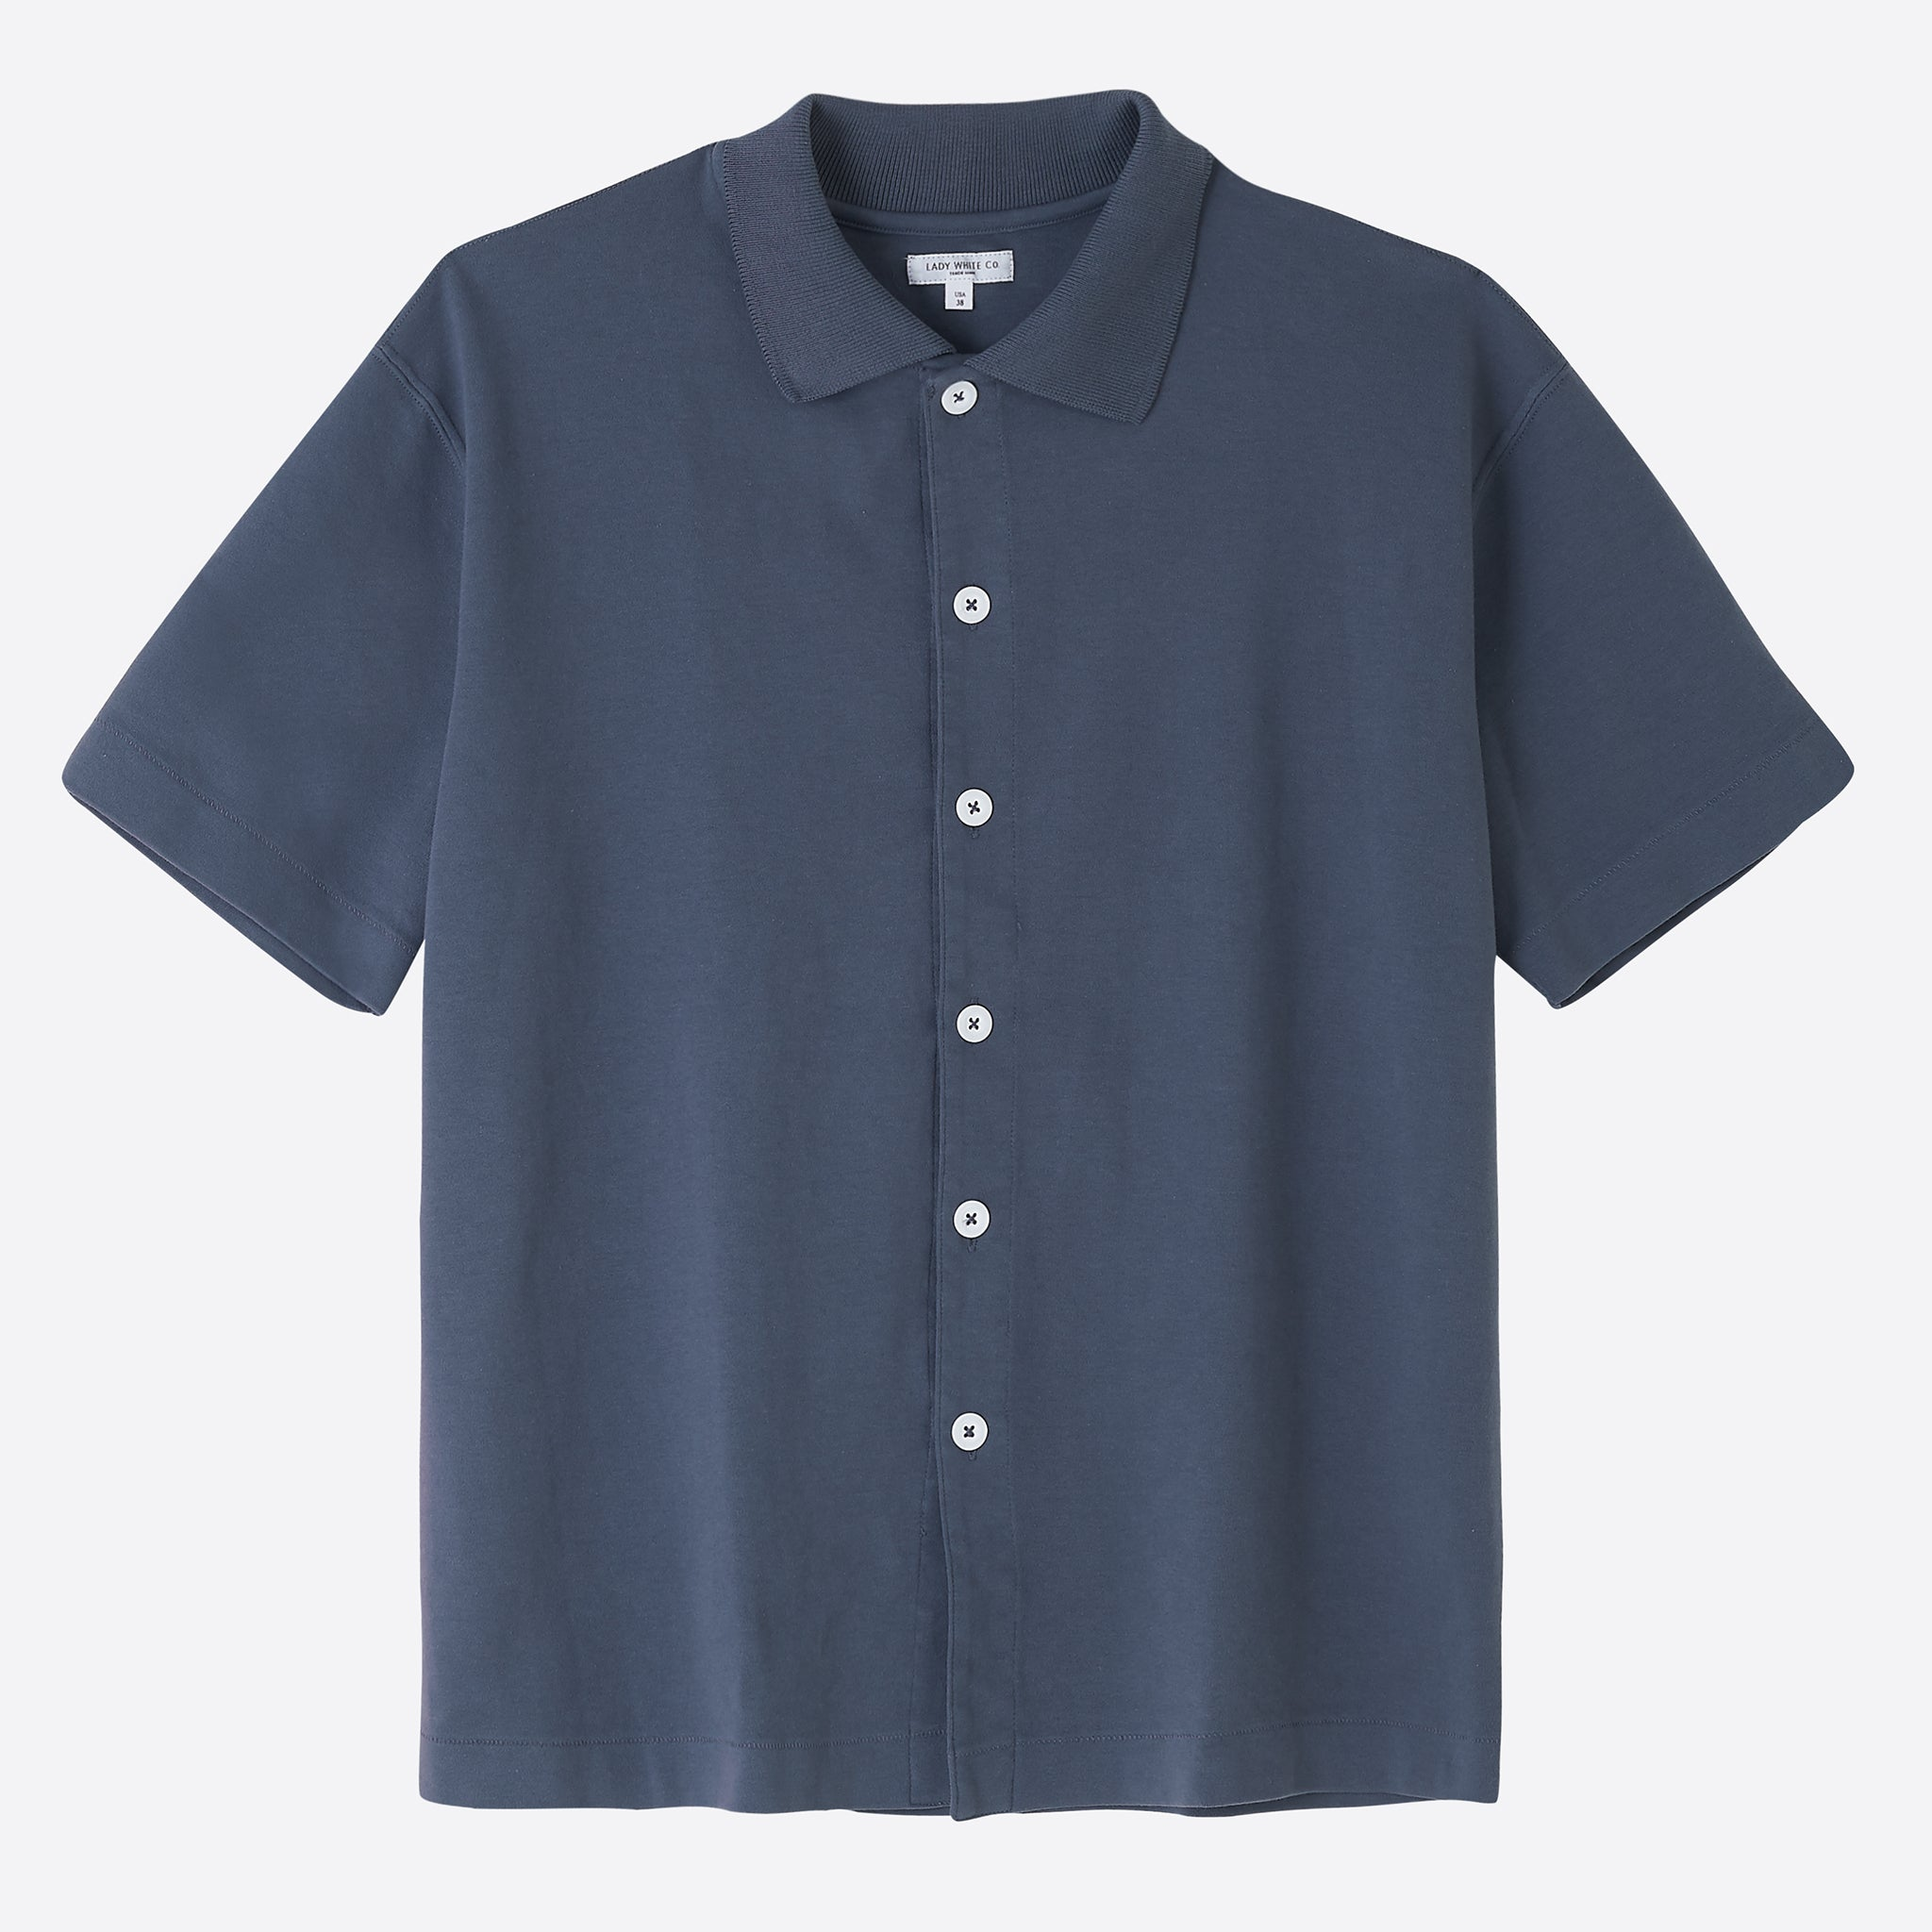 Lady White Co. Placket Polo in Night Grey